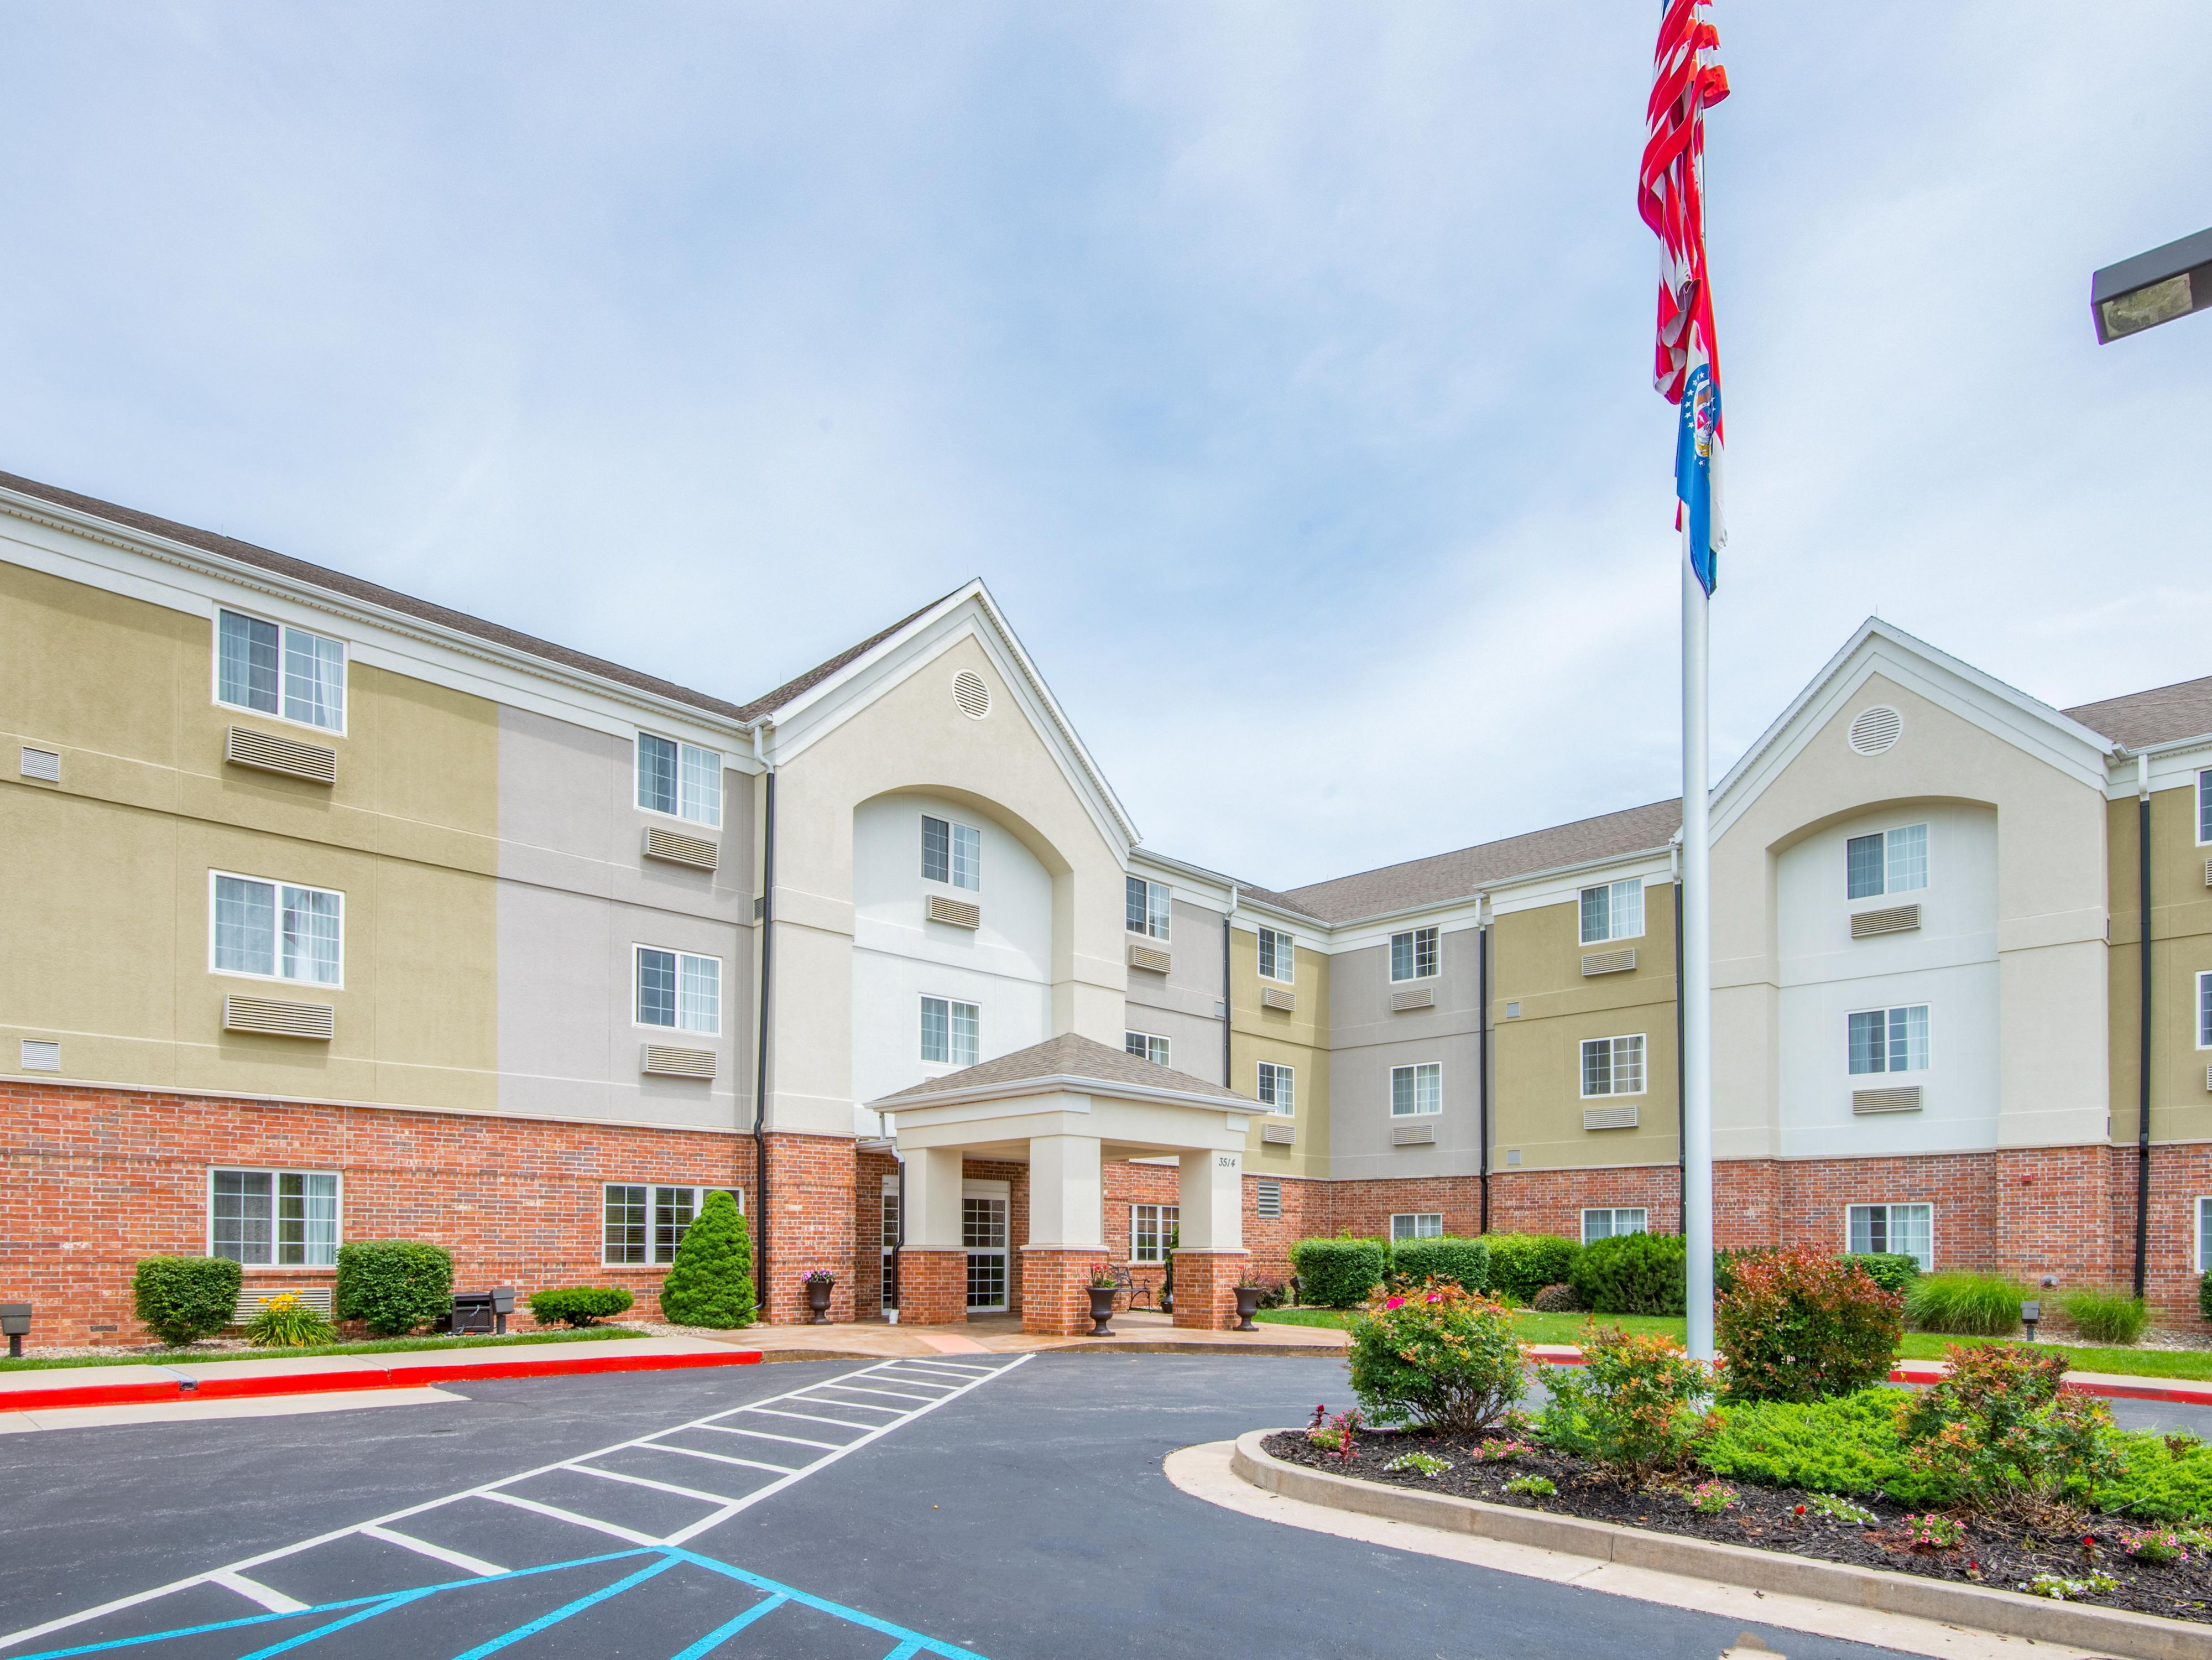 Jefferson City Hotels Candlewood Suites Extended Stay Hotel In Missouri